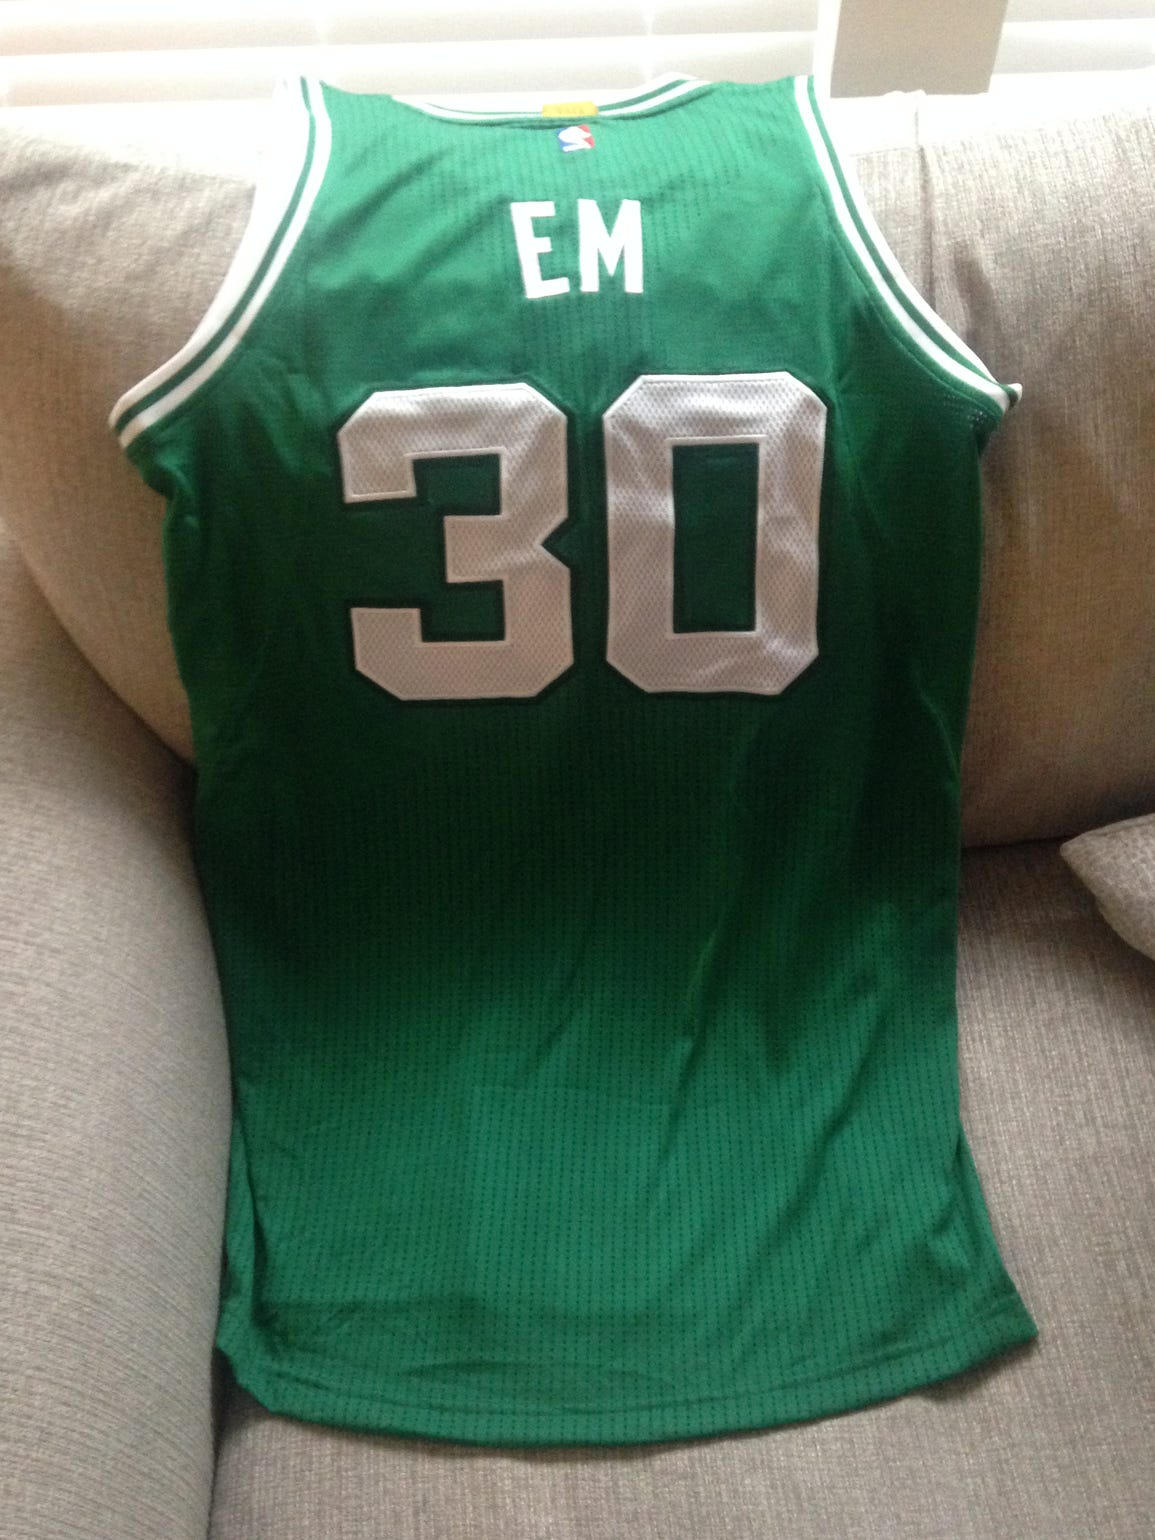 A Celtics green jersey with Baby Em's name and his